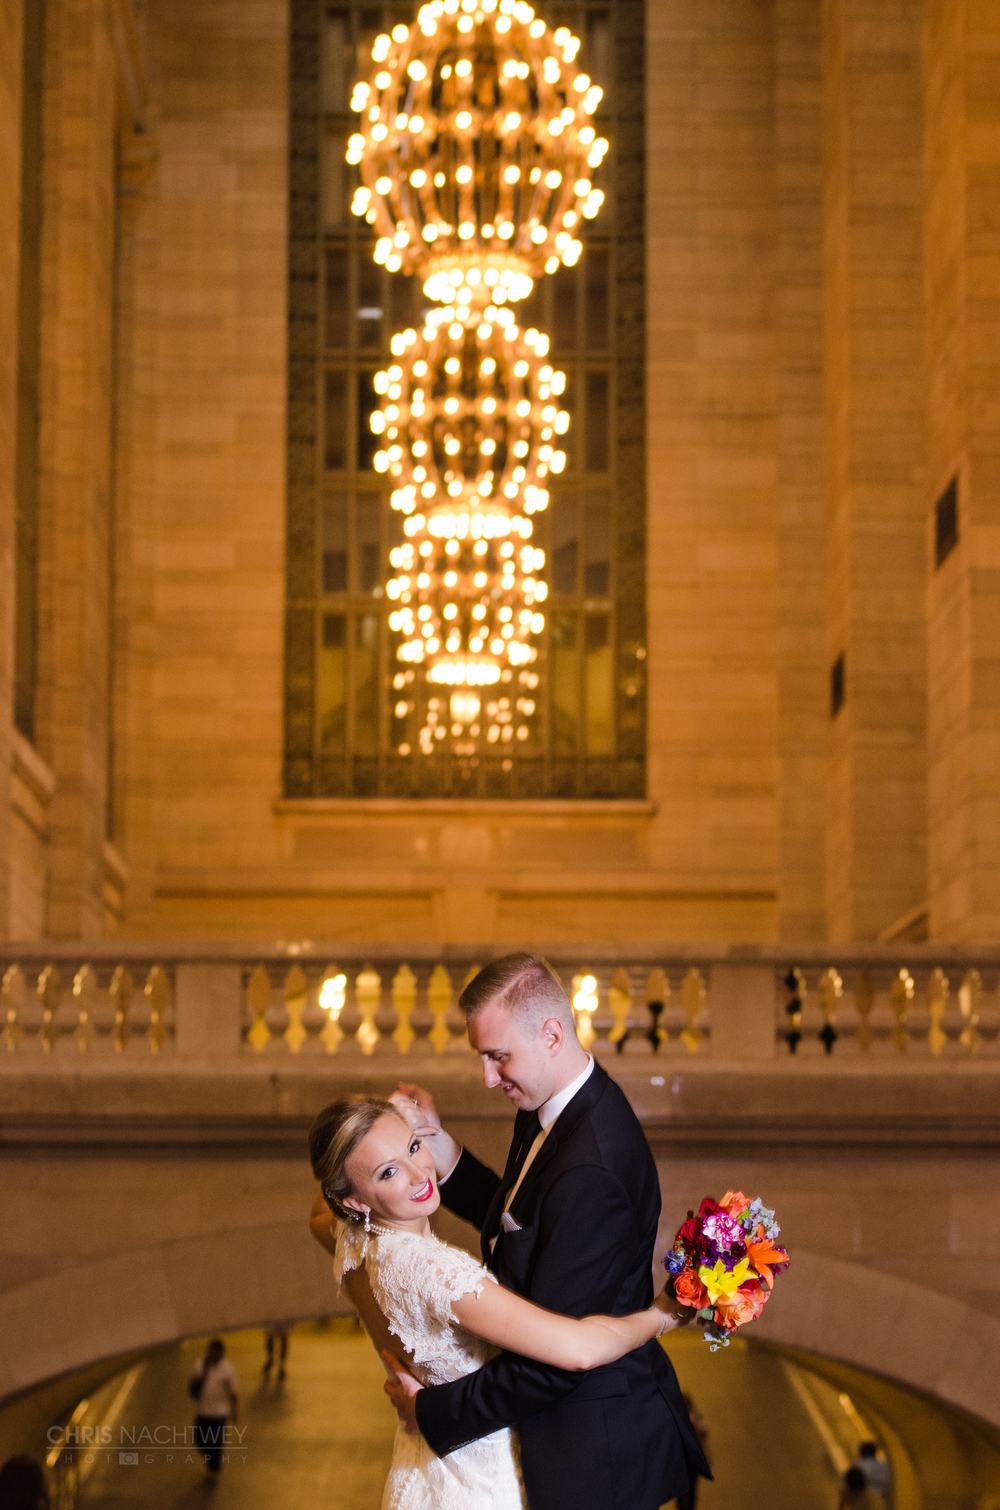 grand-central-station-nyc-wedding-photos-chris-nachtwey.jpg